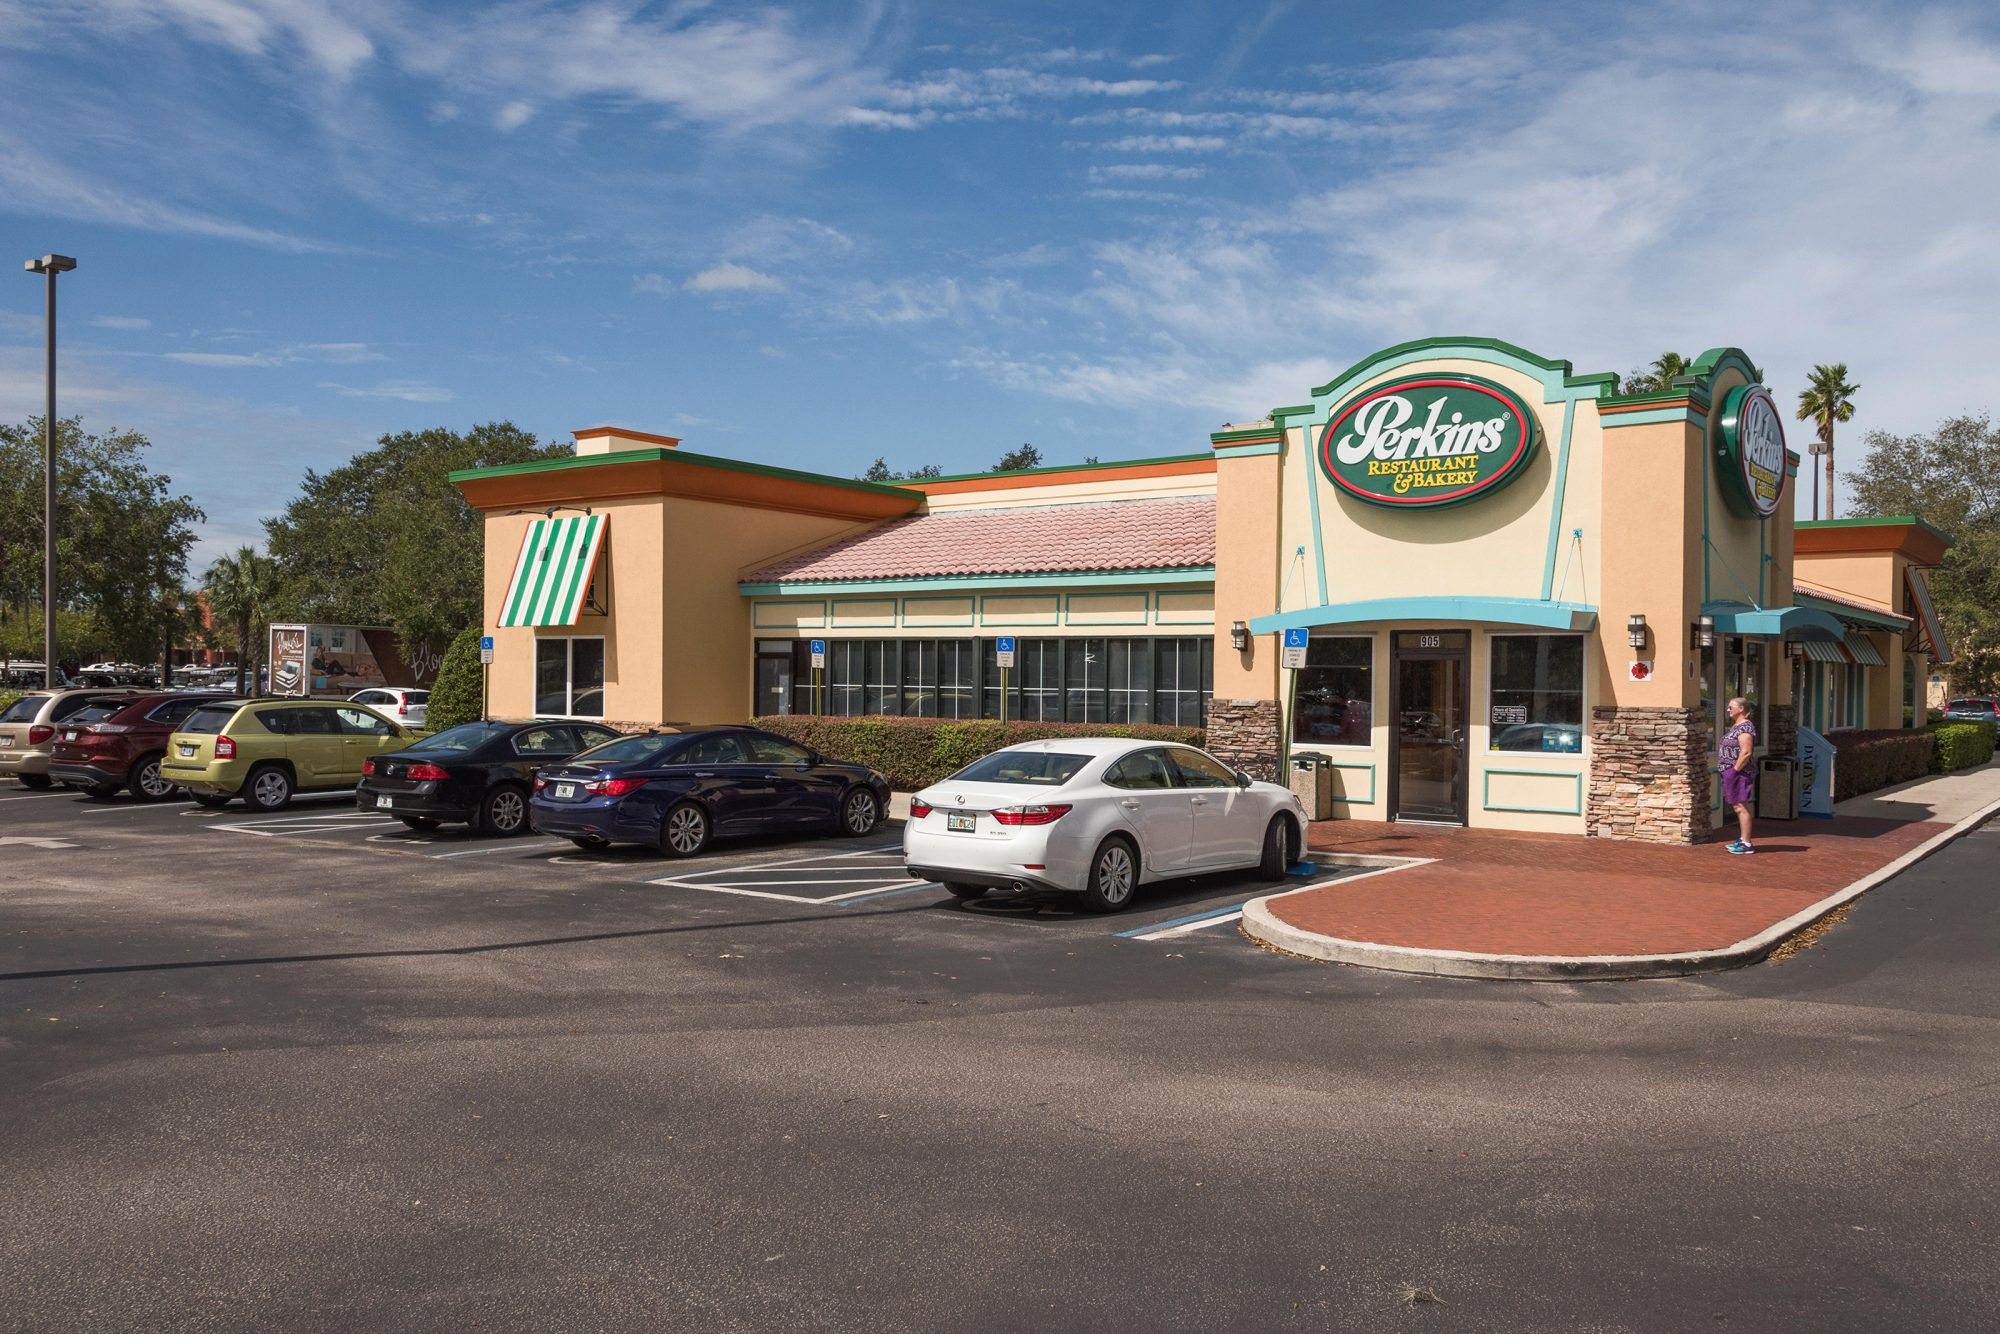 180308-best-casual-dining-perkins